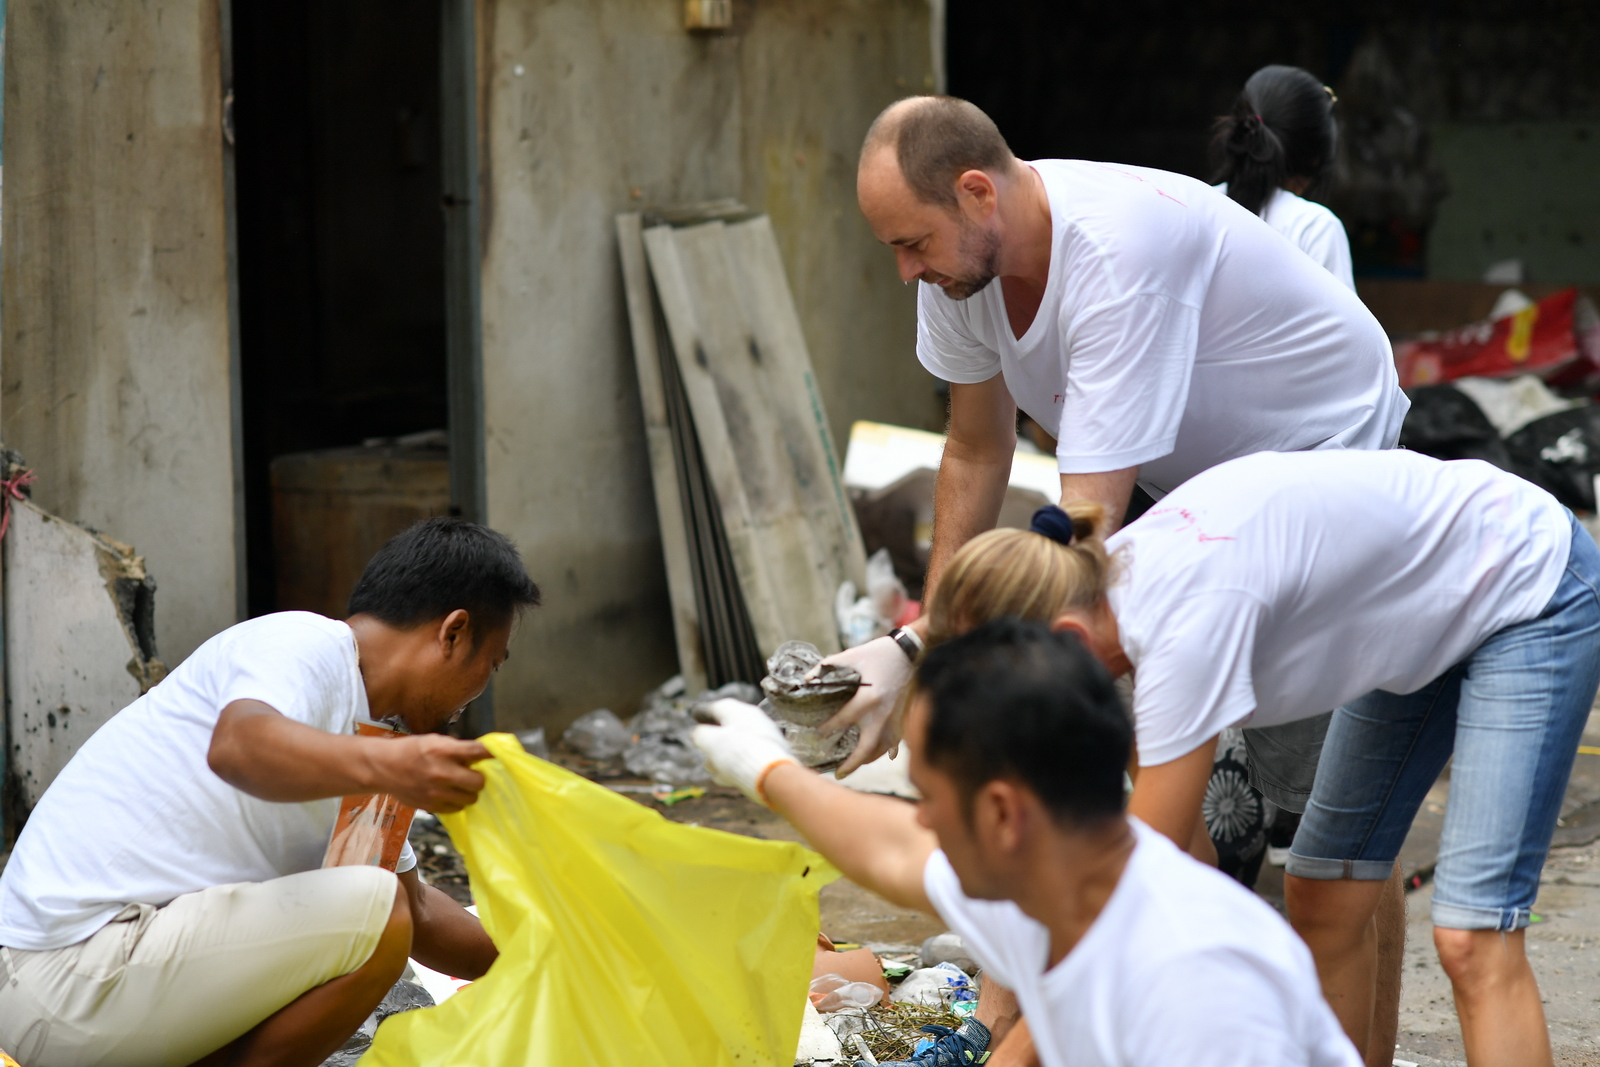 PTendercool-Event-Clean Up The World-190921-105